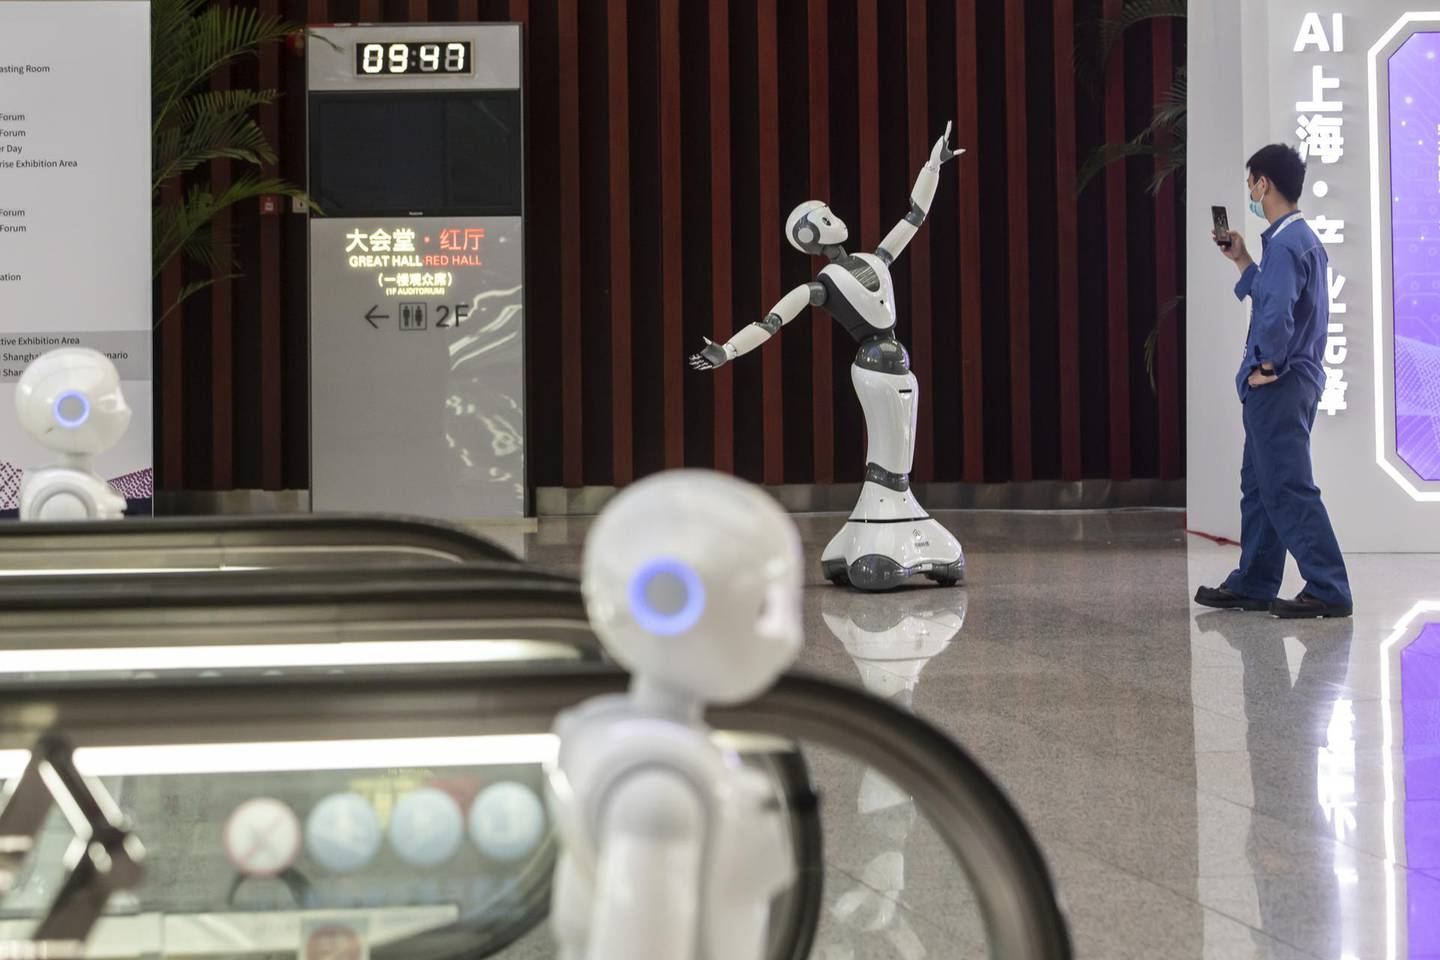 A member of the event staff takes a photograph of a humanoid robot in the exhibition display area at the World AI Conference in Shanghai, China, on Thursday, July 9, 2020. China will invest an estimated $1.4 trillion over six years to 2025, calling on urban governments and private tech giantsto lay fifth generation wireless networks, install cameras and sensors, and develop AI software that will underpin autonomous driving to automated factories and mass surveillance, according to the National People's Congress Work Report released in May. Photographer: Qilai Shen/Bloomberg